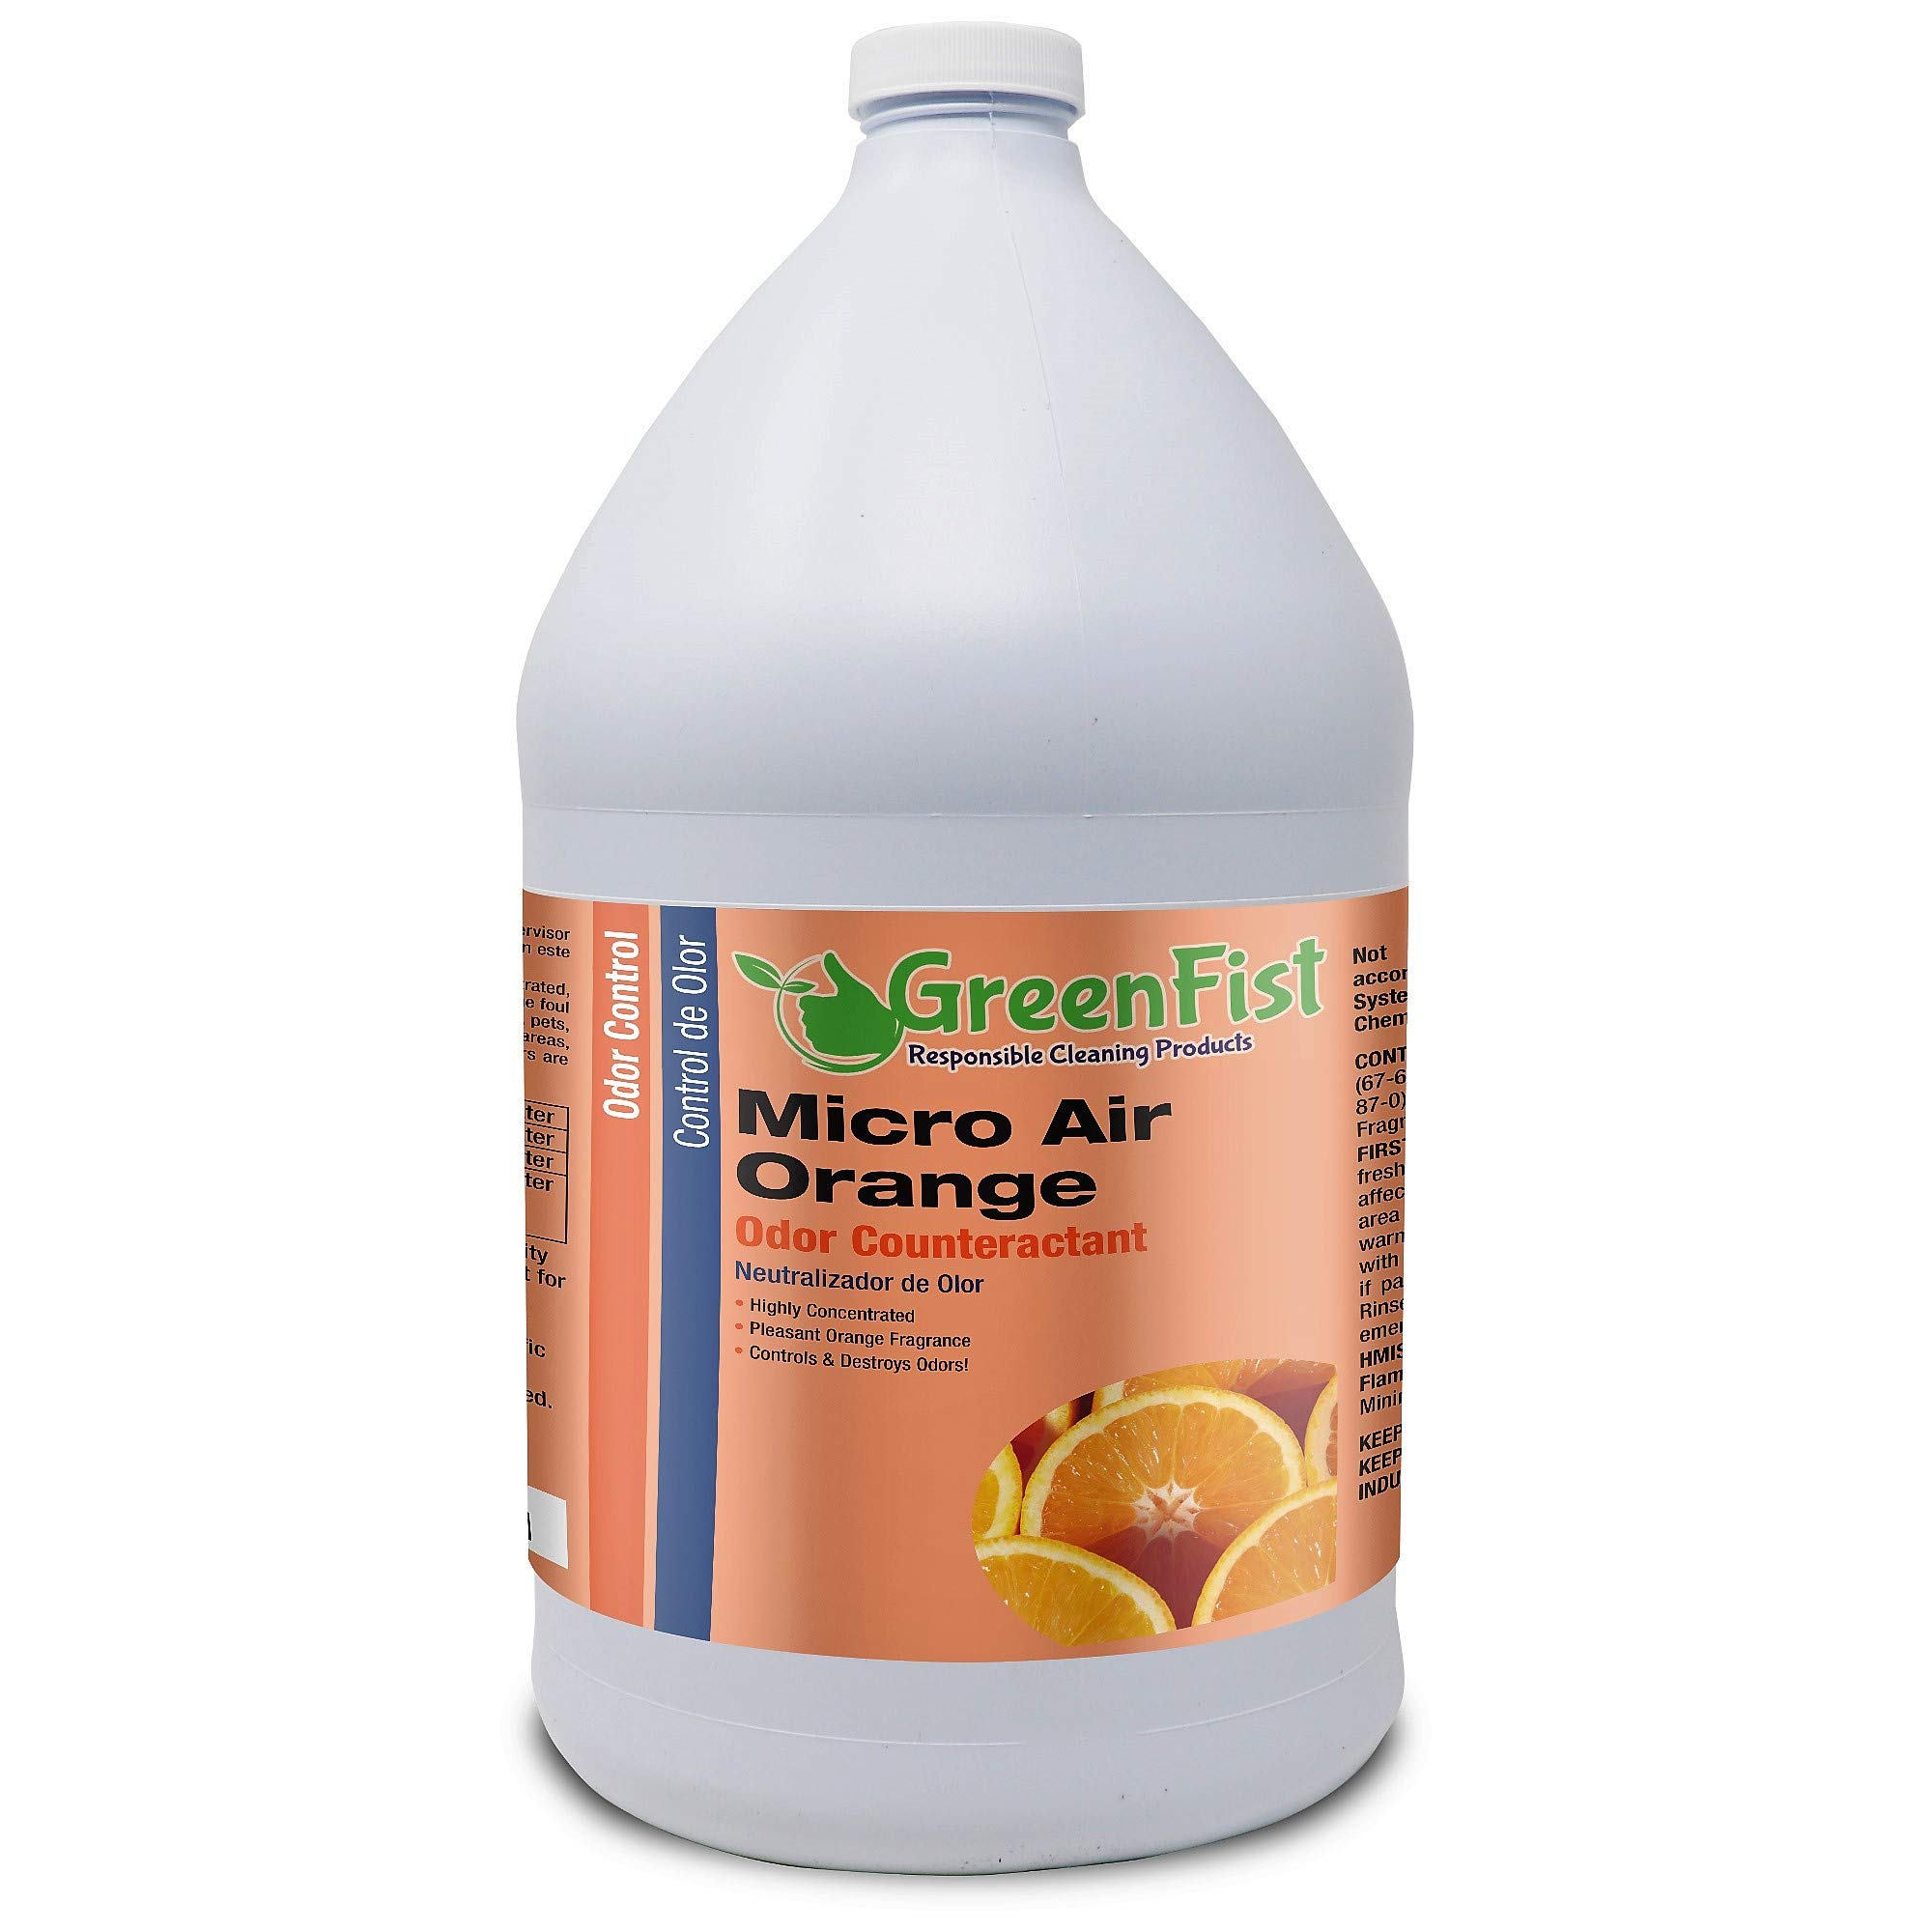 Micro Air Odor Counteractant Pleasant Orange Fragrance [ Concentrated ] (1 Gallon) by GreenFist